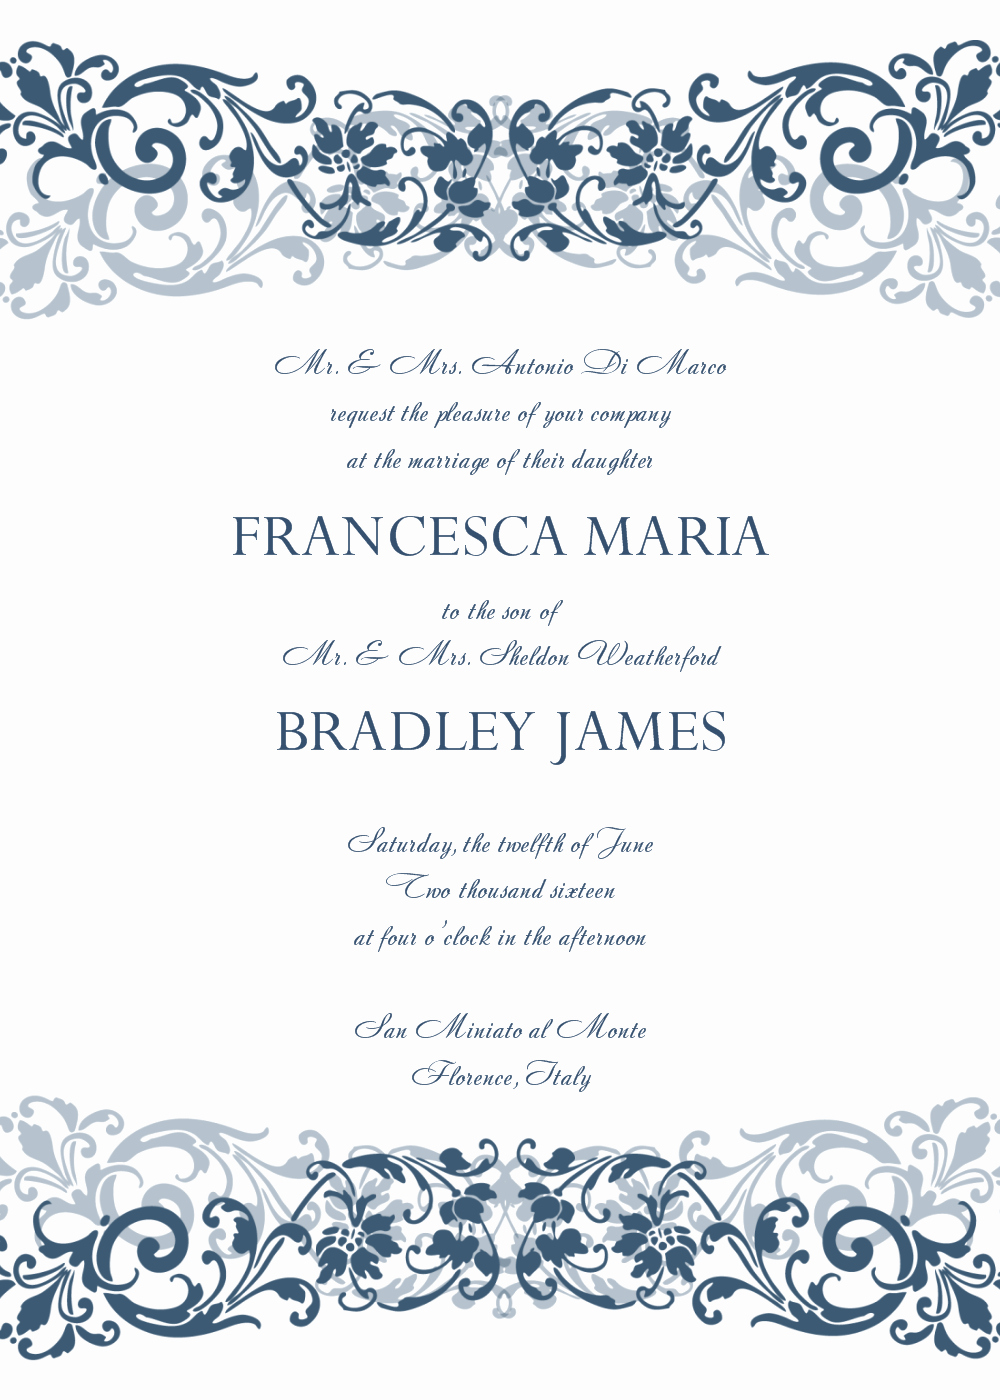 Wedding Invitation Design Templates Awesome Free Wedding Design Invitation Template